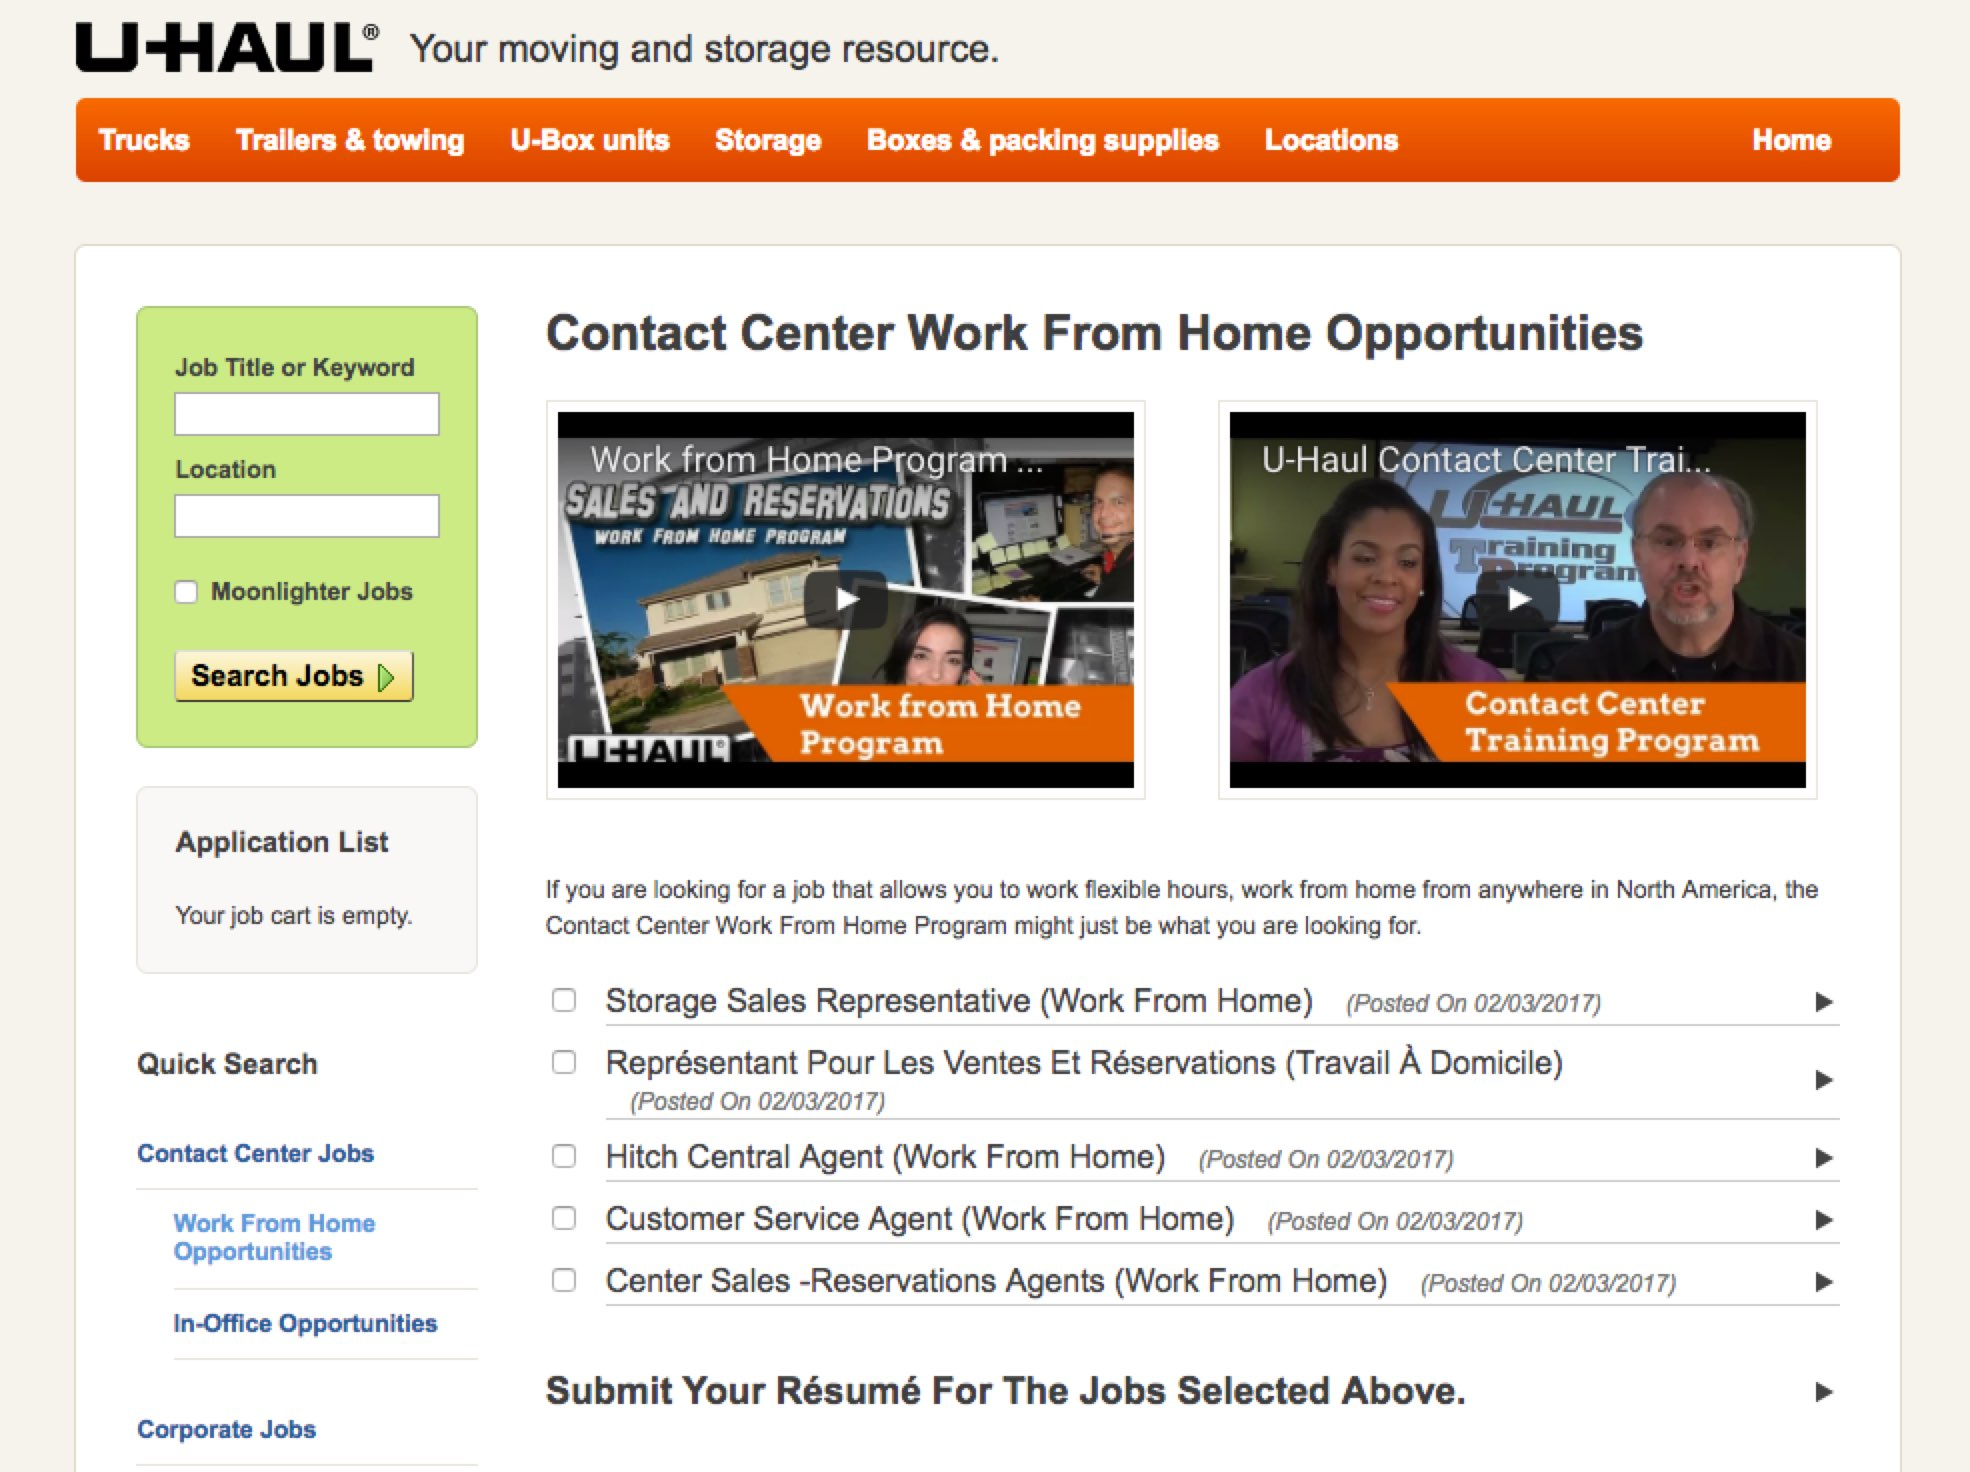 Work from Home Virtual Microsite | U-Haul | Ongig Blog